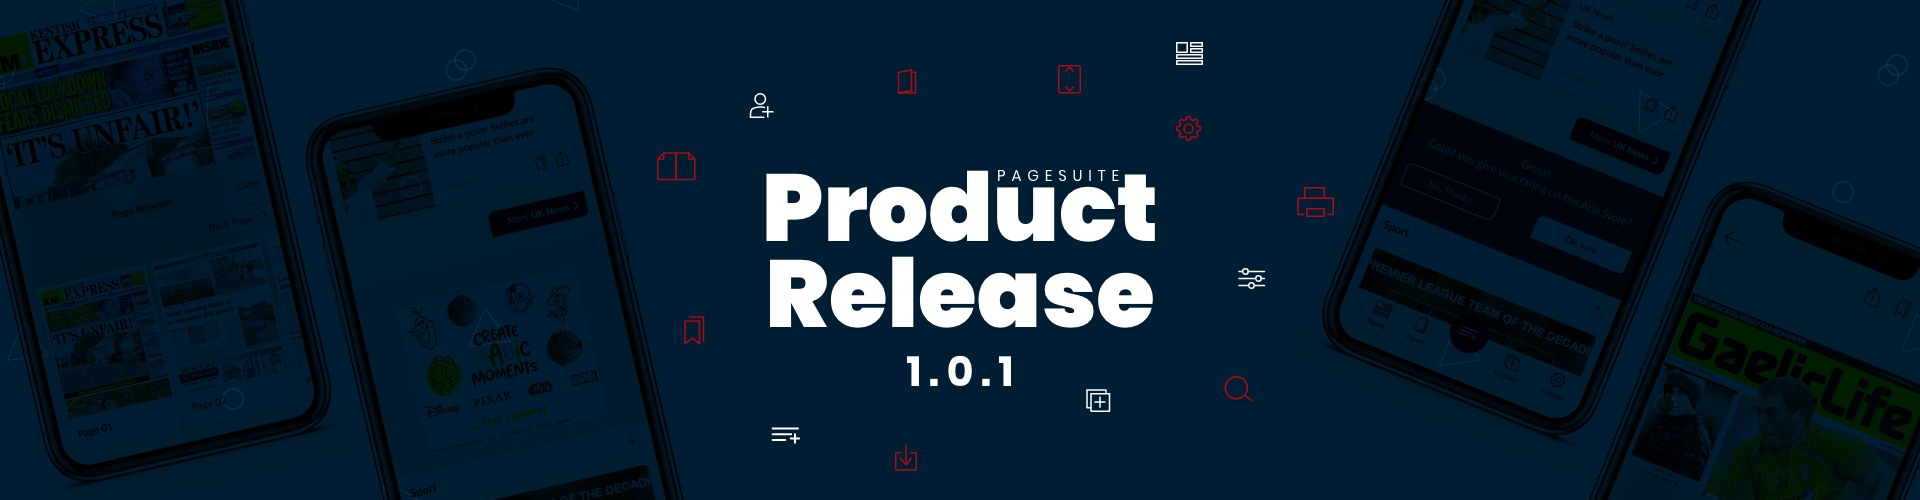 Product Release Notes – 1.0.1